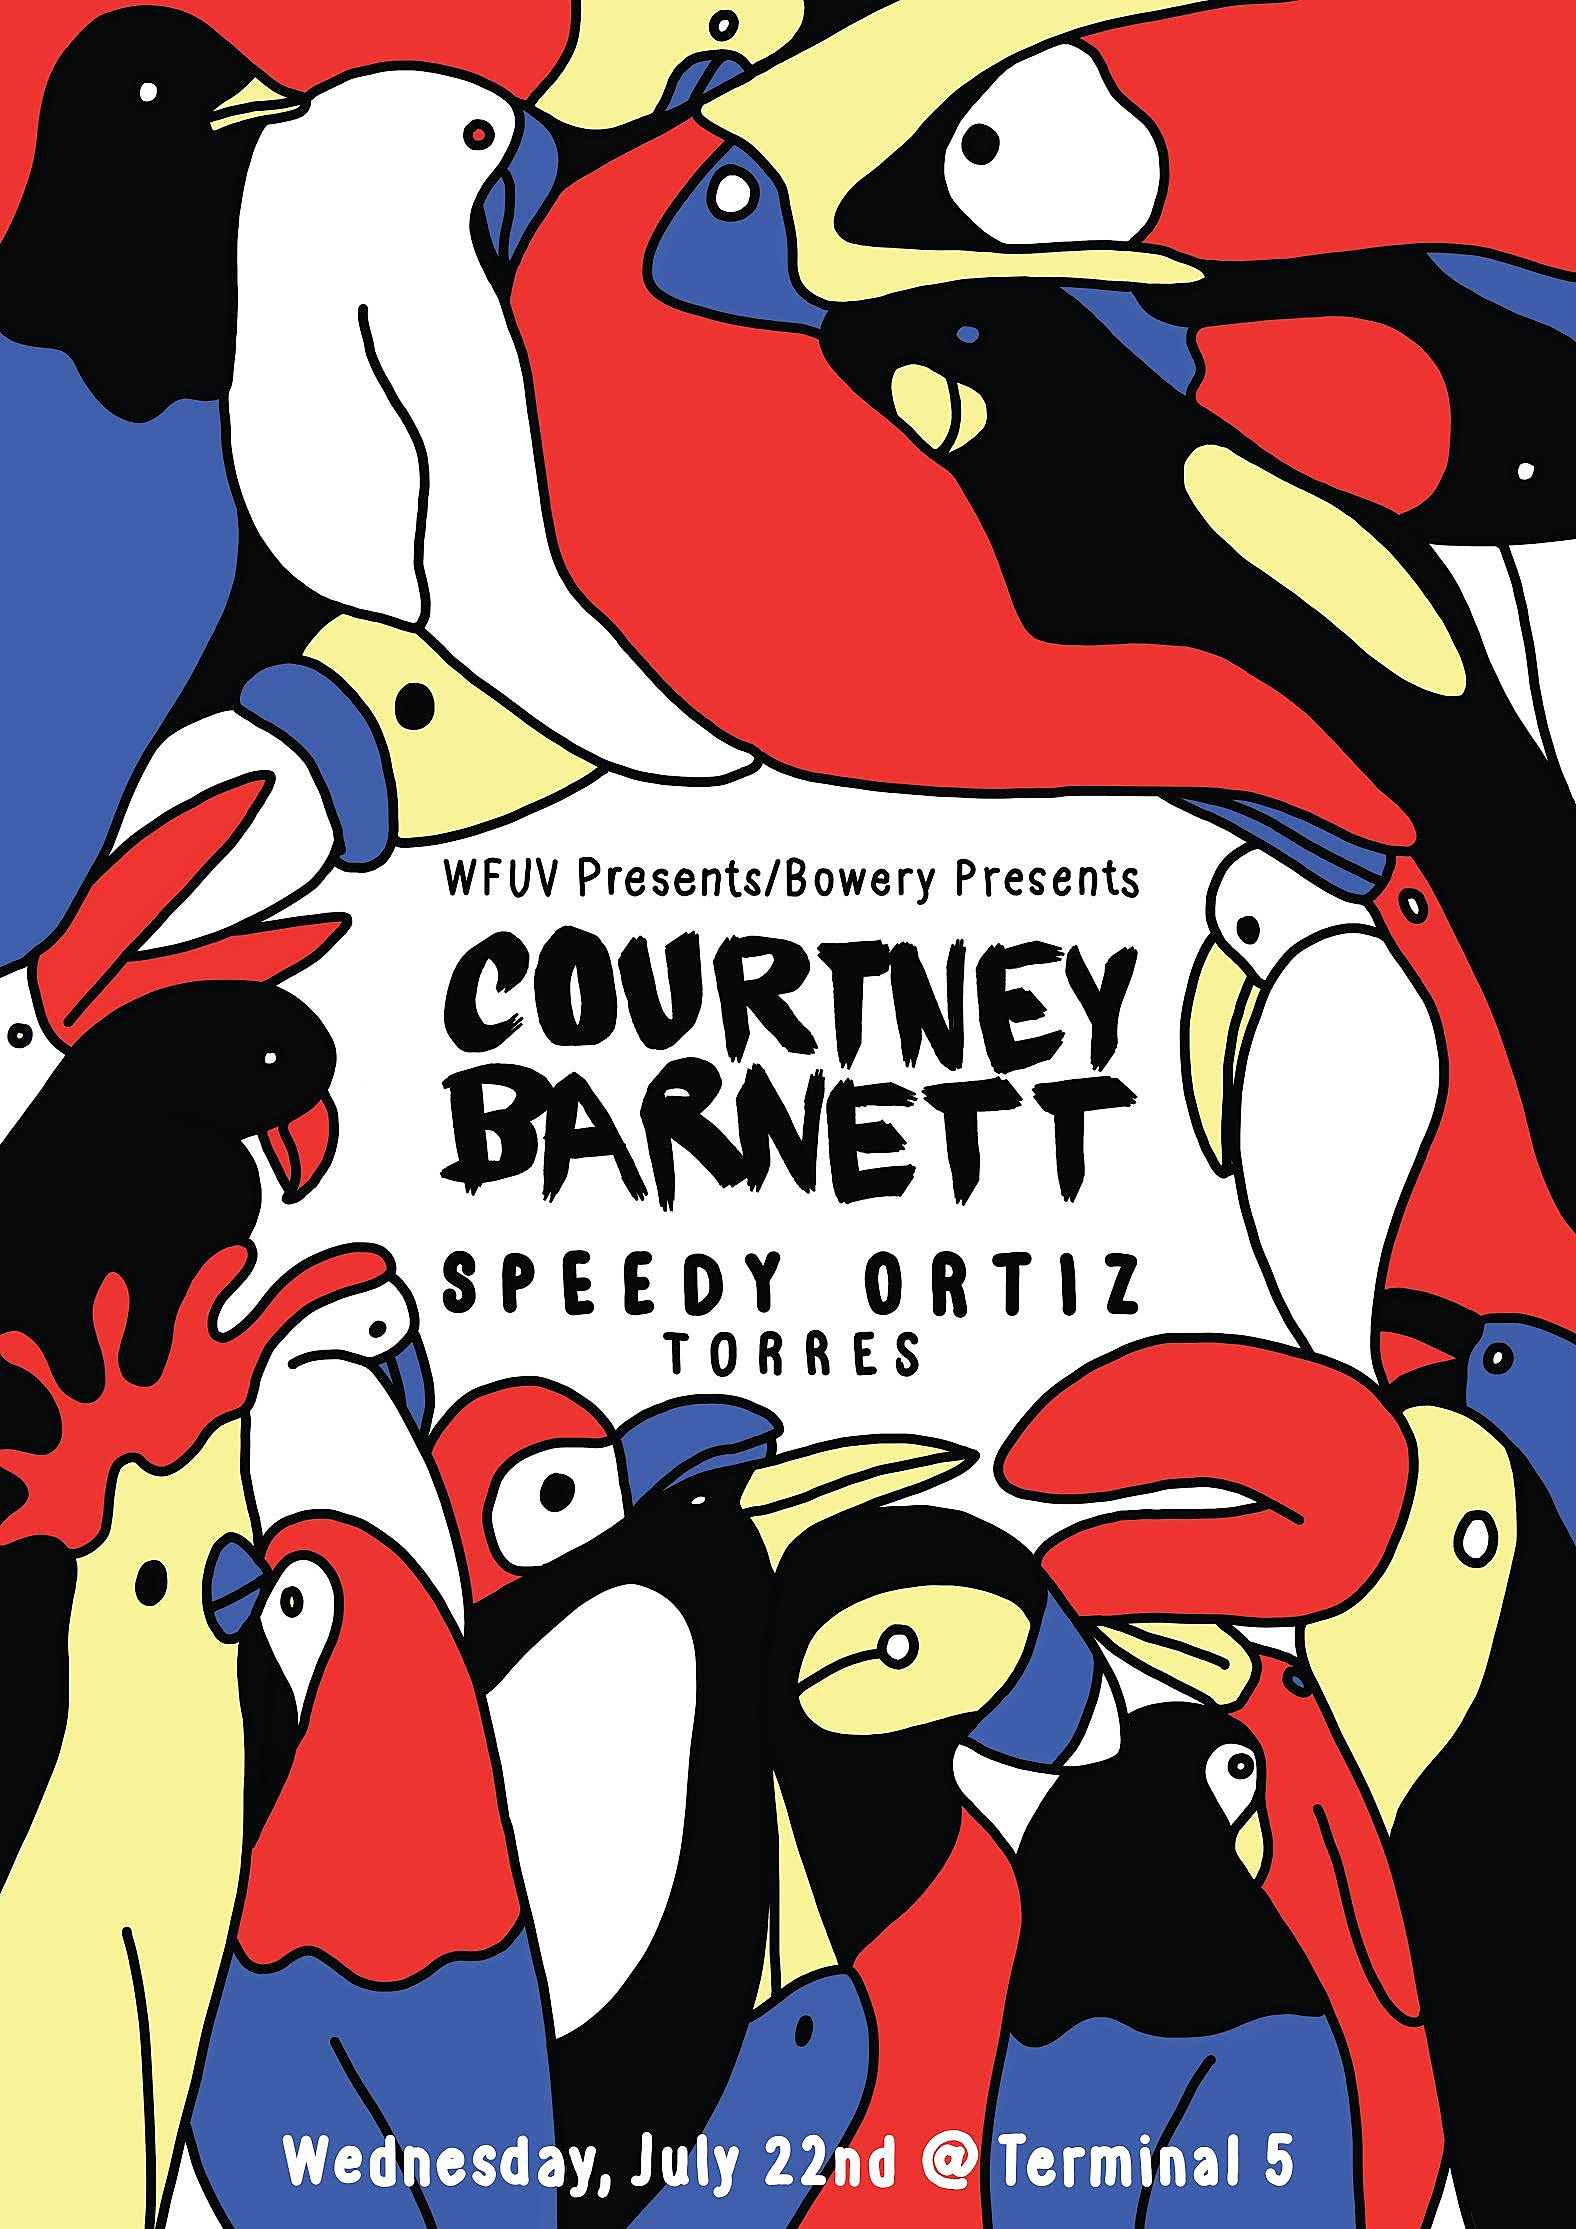 Courtney Barnett poster